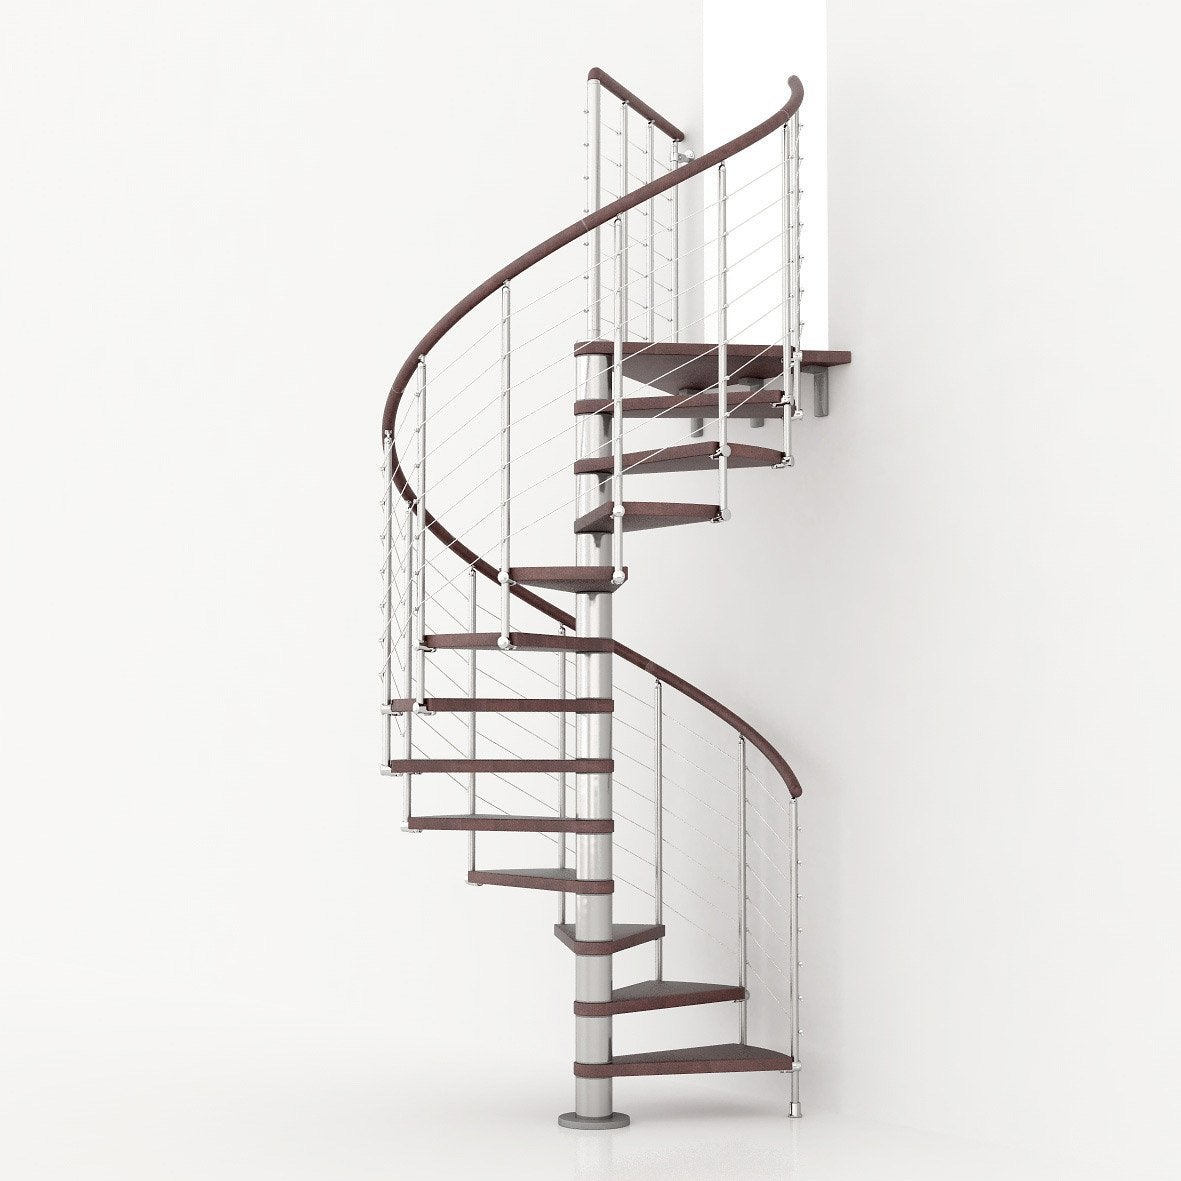 Escalier colima on rond ring line marches bois structure m tal chrom ler - Leroy merlin escalier ...